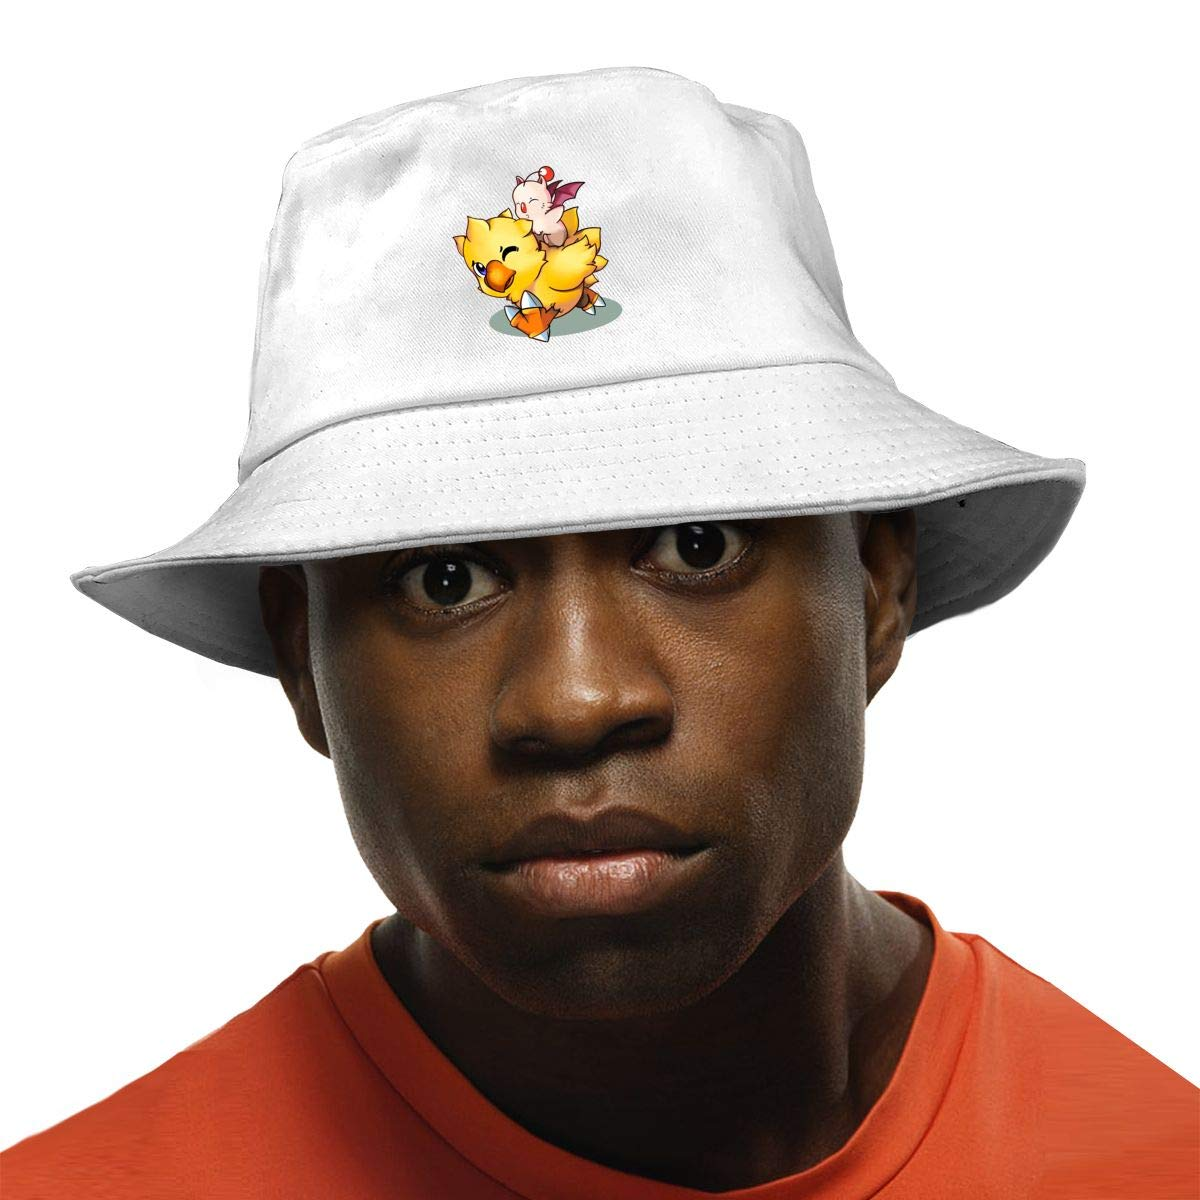 PPAN Final Fantasy Mog and Chocobo Unisex Cotton Packable Black Travel Bucket Hat Fishing Cap